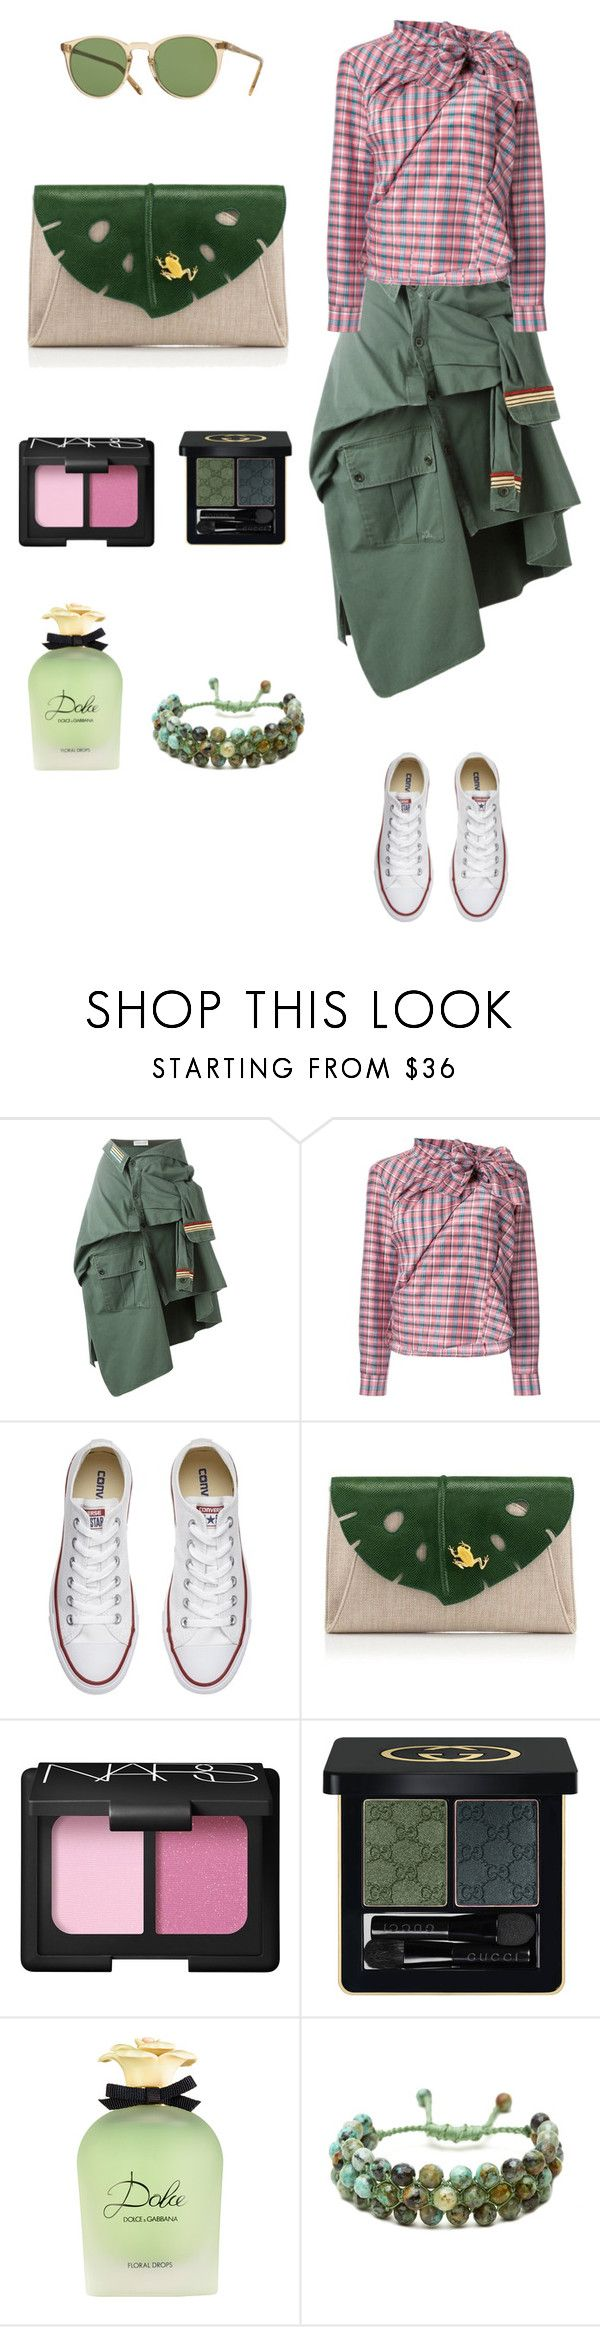 """""""Be unconventional: shirt for skirt ✌🏻"""" by valelondon ❤ liked on Polyvore featuring Faith Connexion, Isabel Marant, Converse, NARS Cosmetics, Gucci, Dolce&Gabbana, Sacred Jewels and Oliver Peoples"""